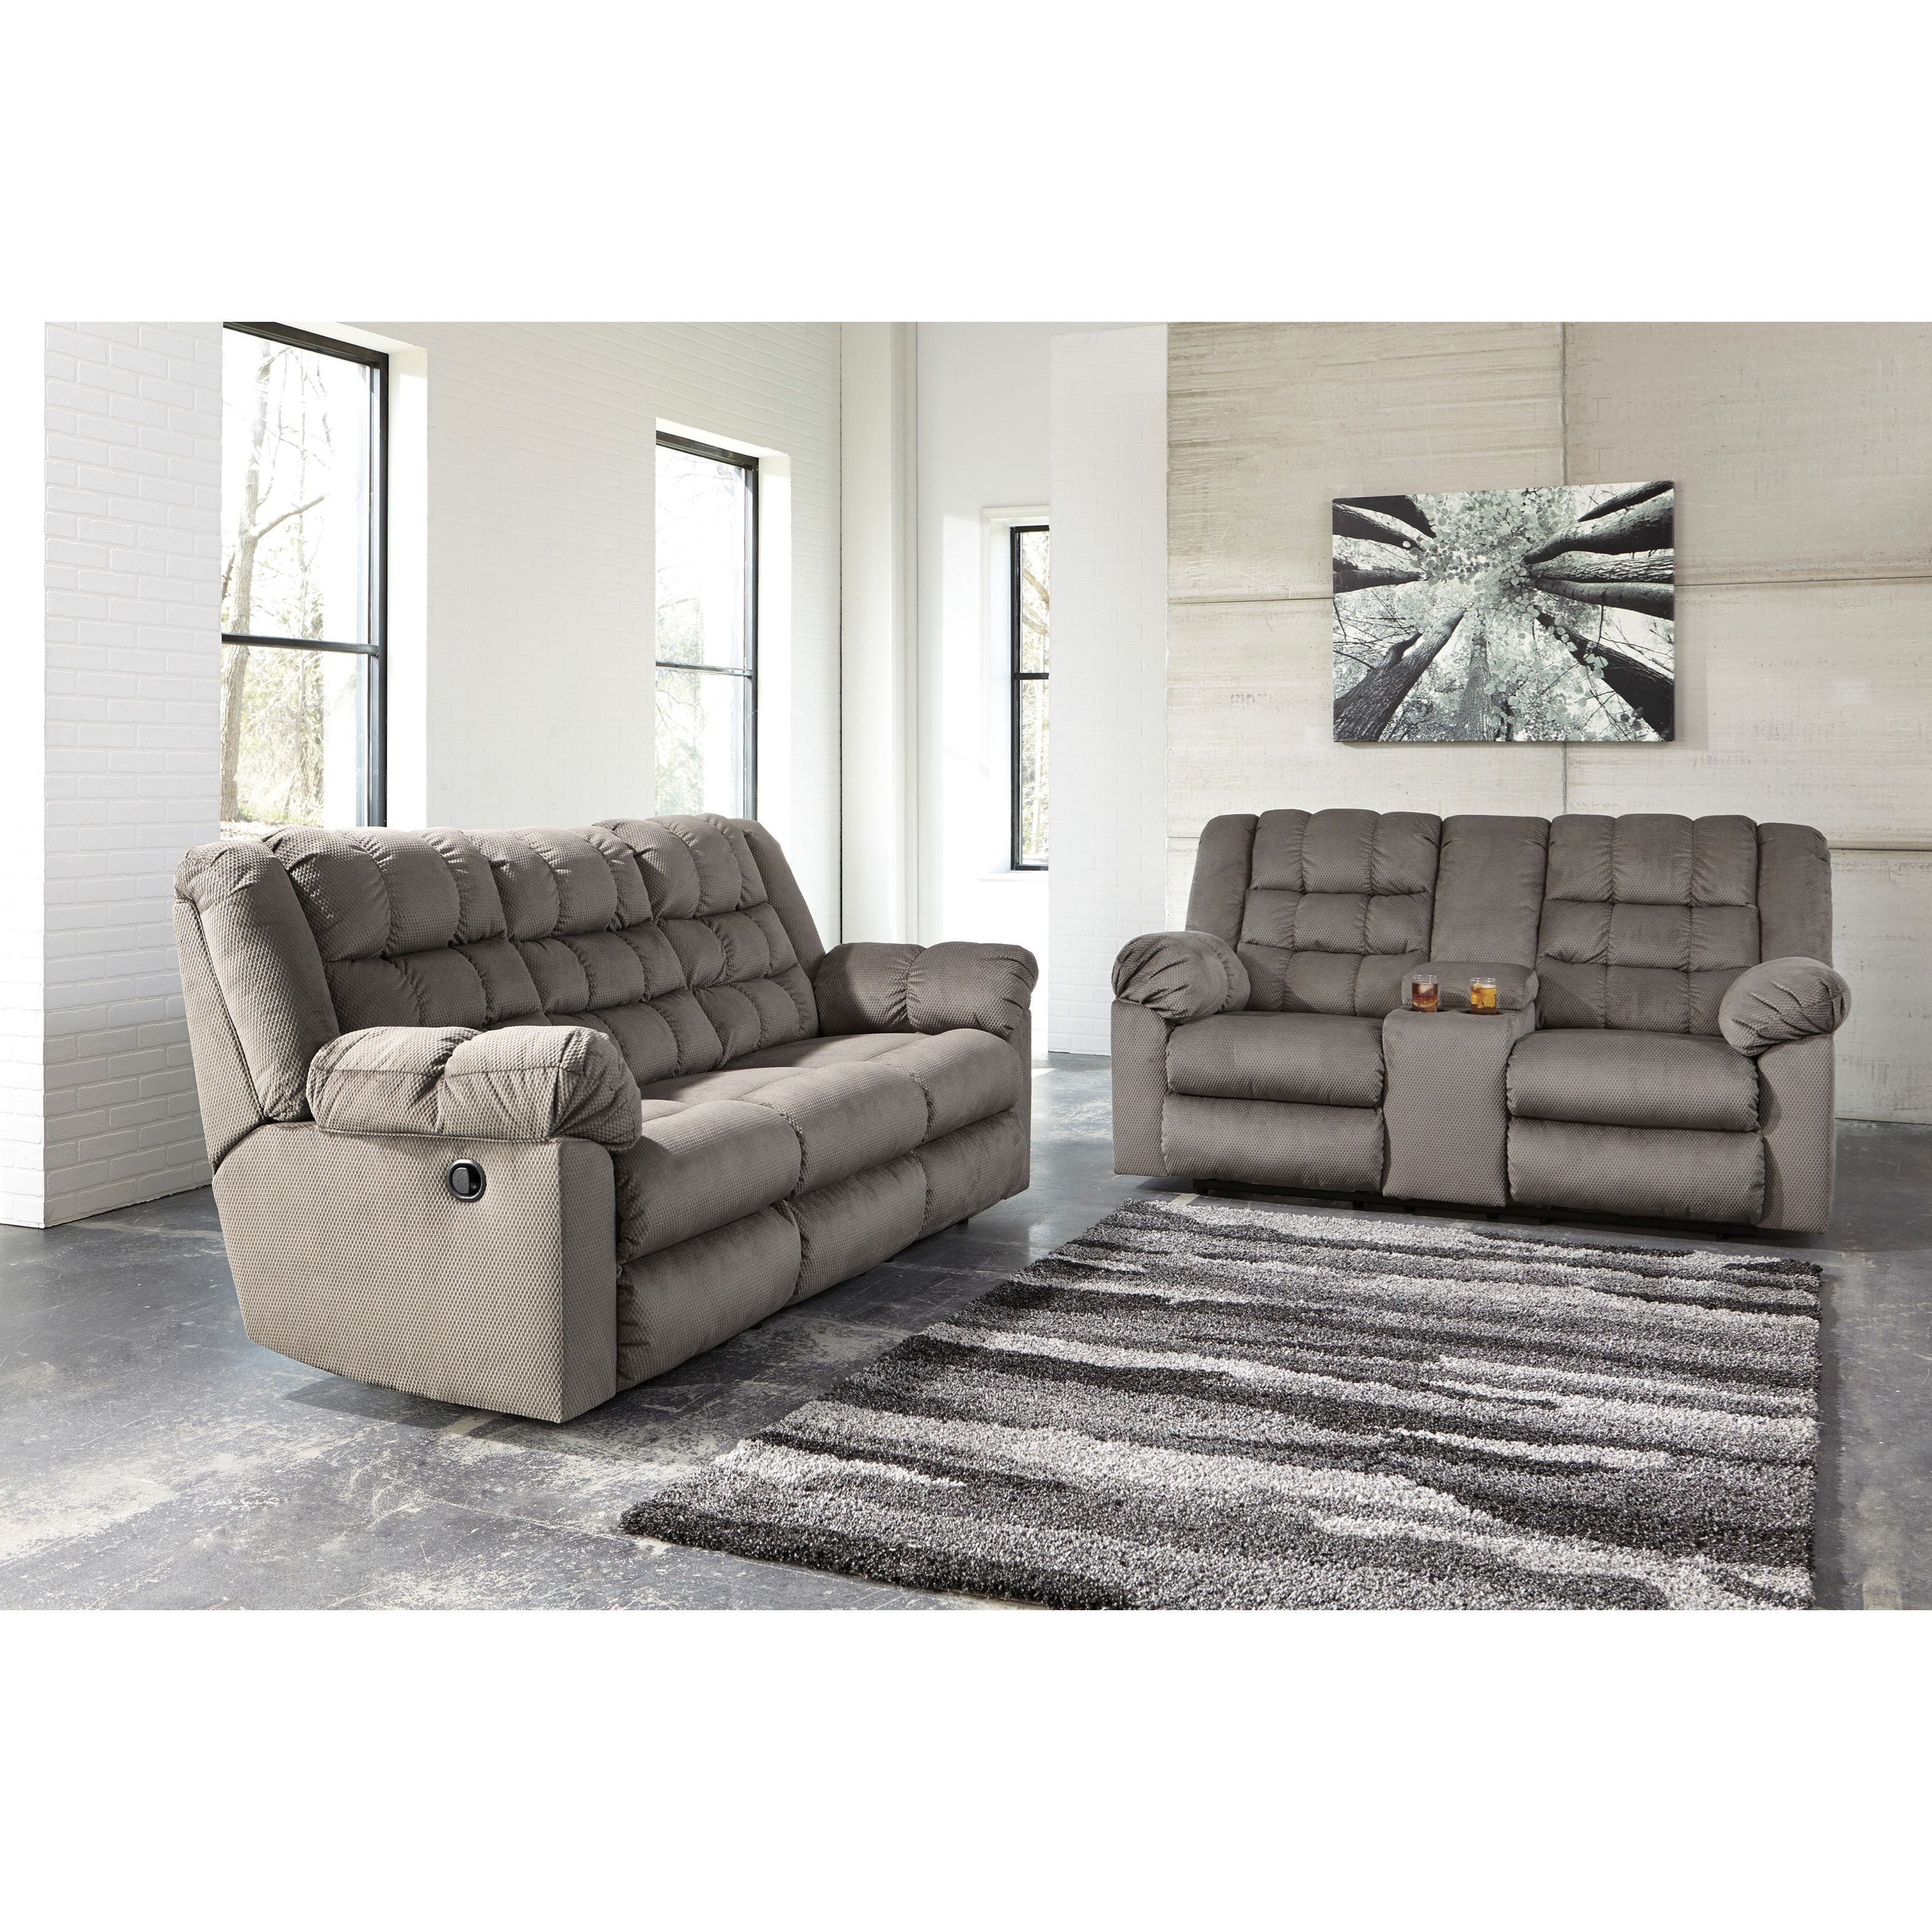 Signature Design by Ashley Mort Reclining Living Room Group - Item Number: 26105 Living Room Group 1